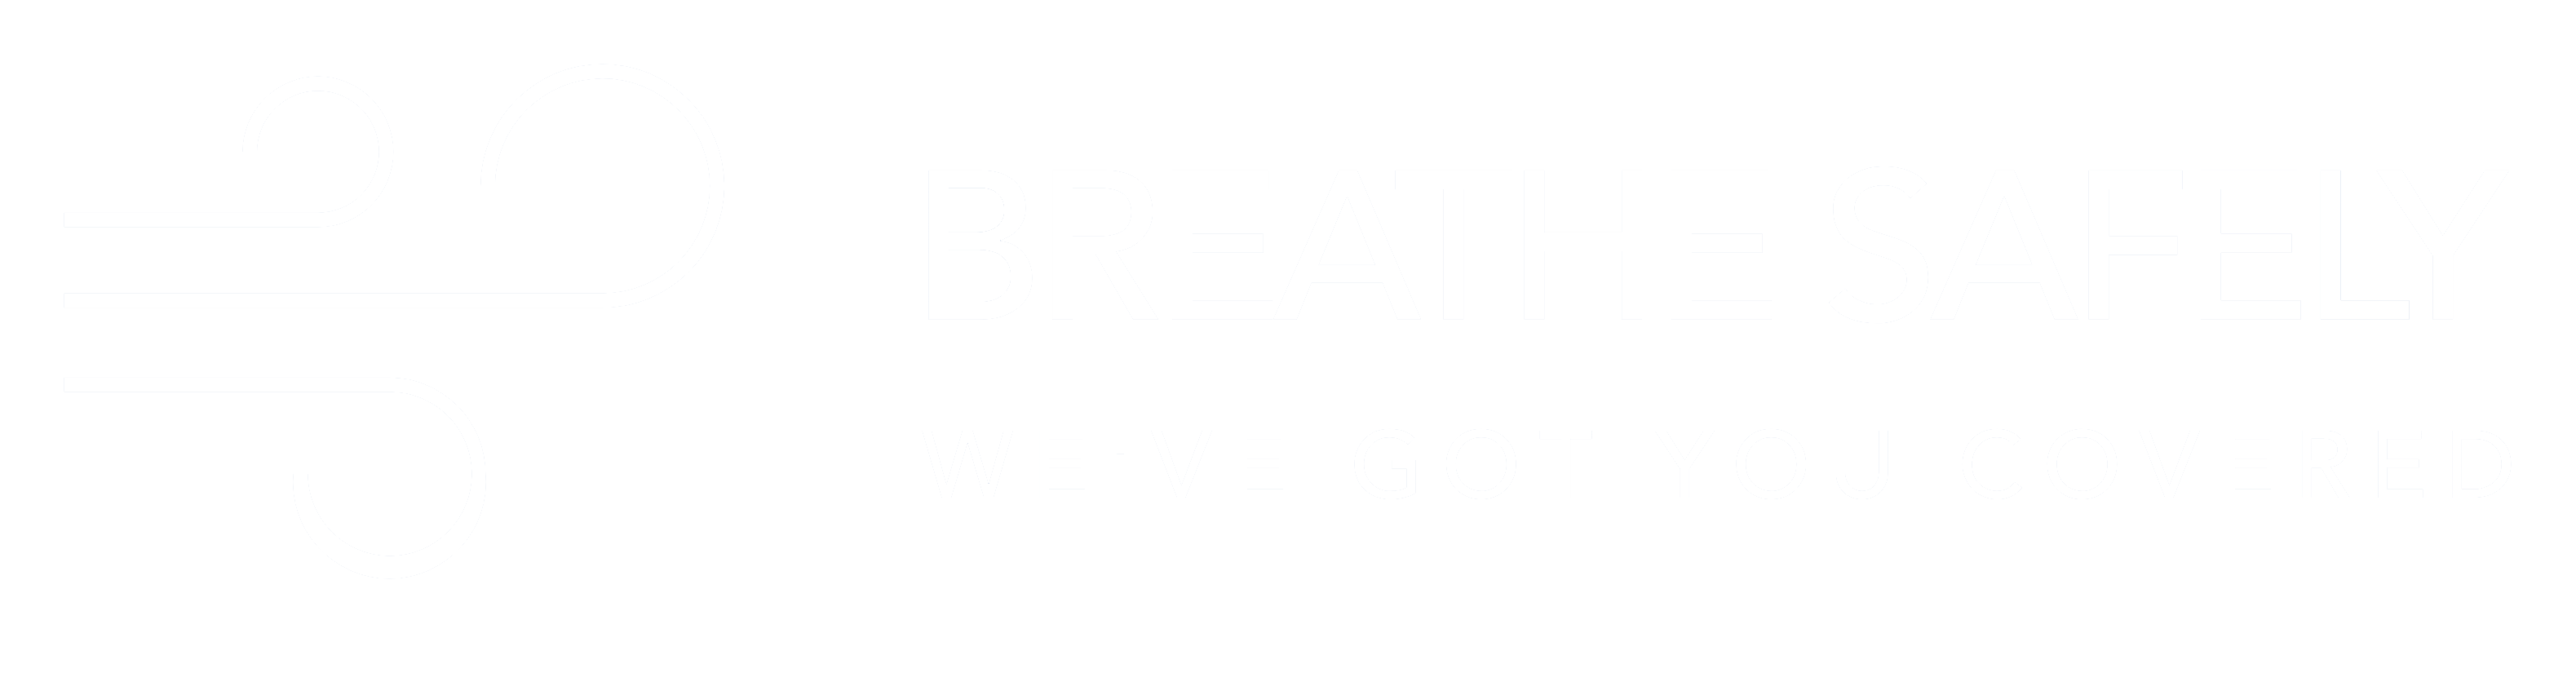 breathe-safely-white-background